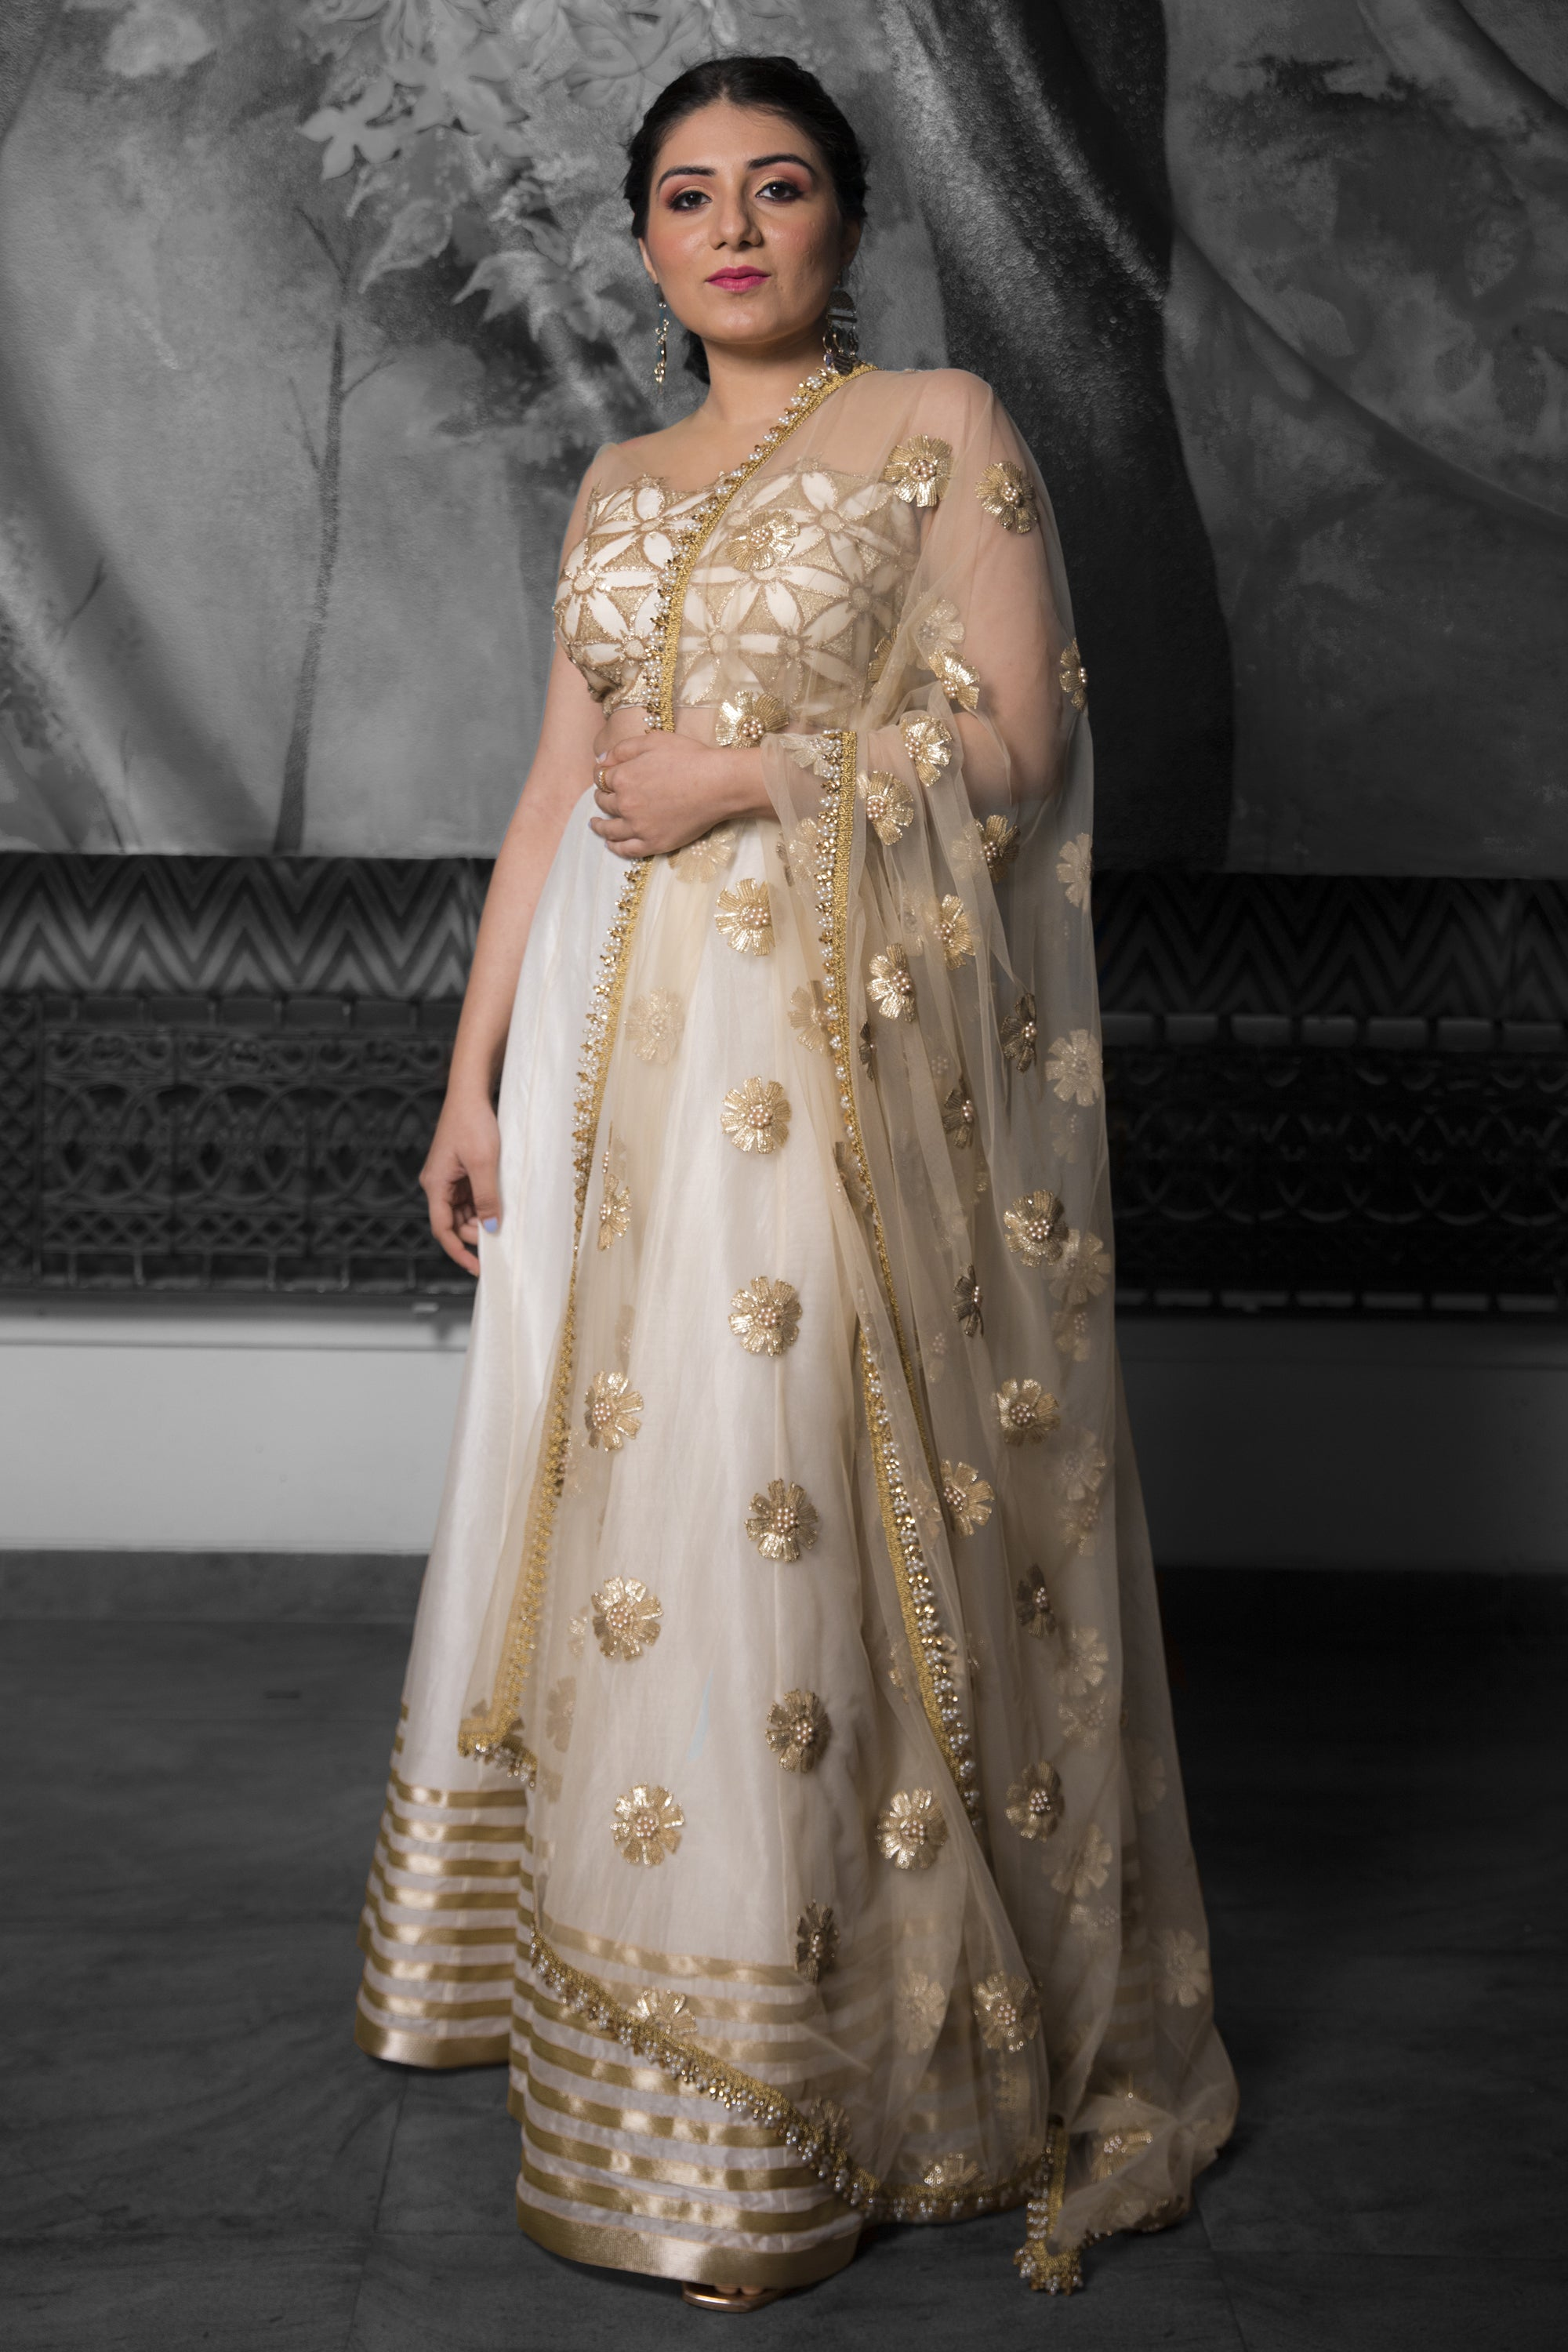 Ivory & Gold Lehenga With Cutwork & Pearls SIDE